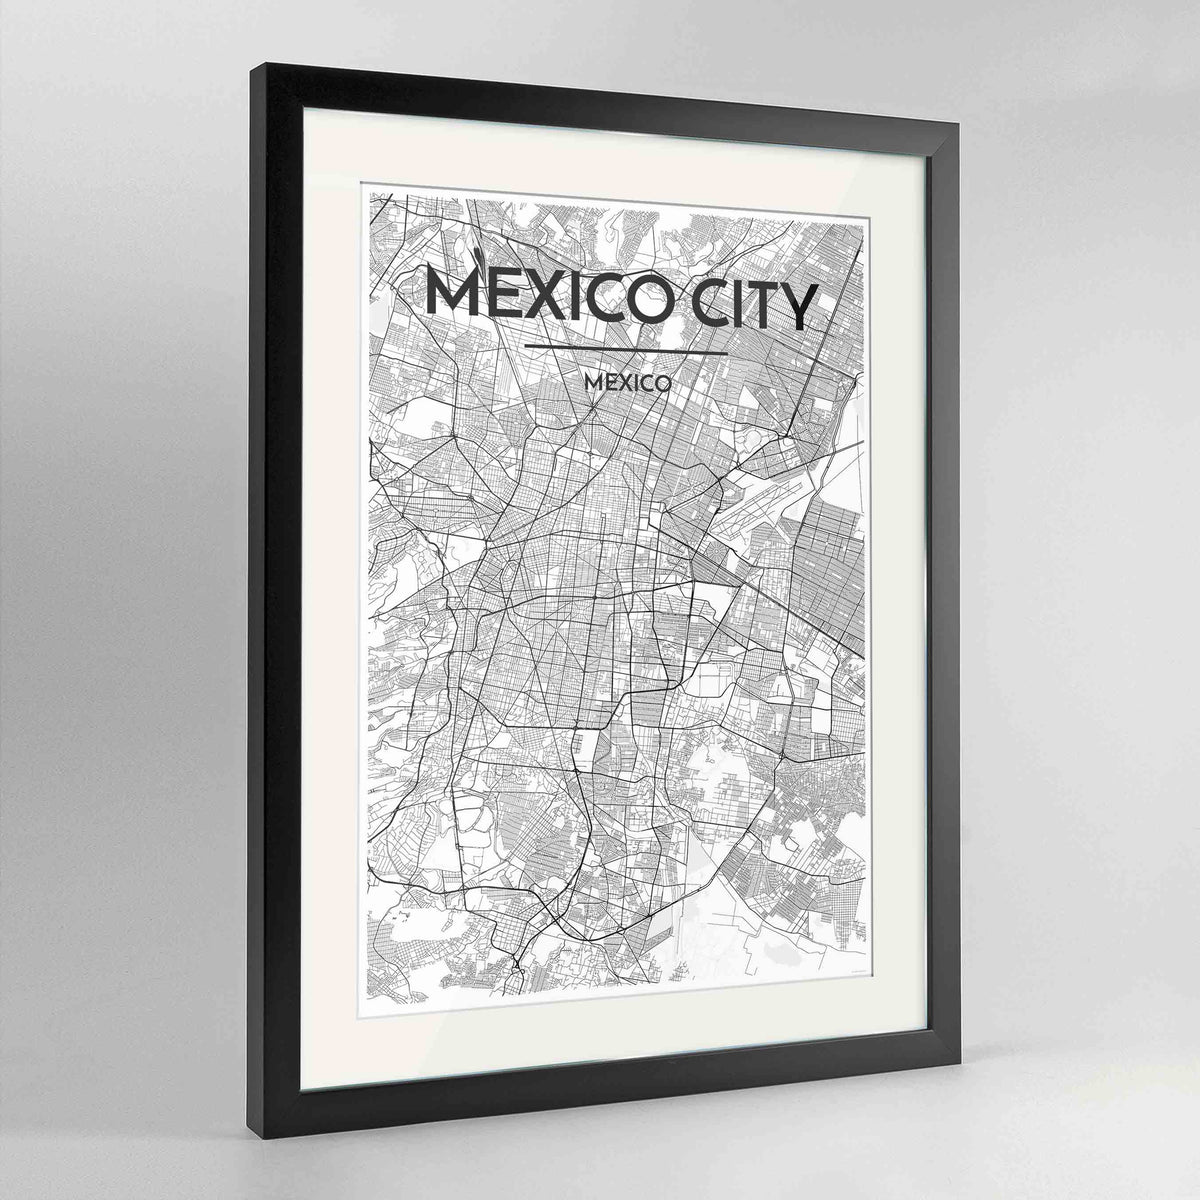 "Framed Mexico City Map Art Print 24x36"" Contemporary Black frame Point Two Design Group"